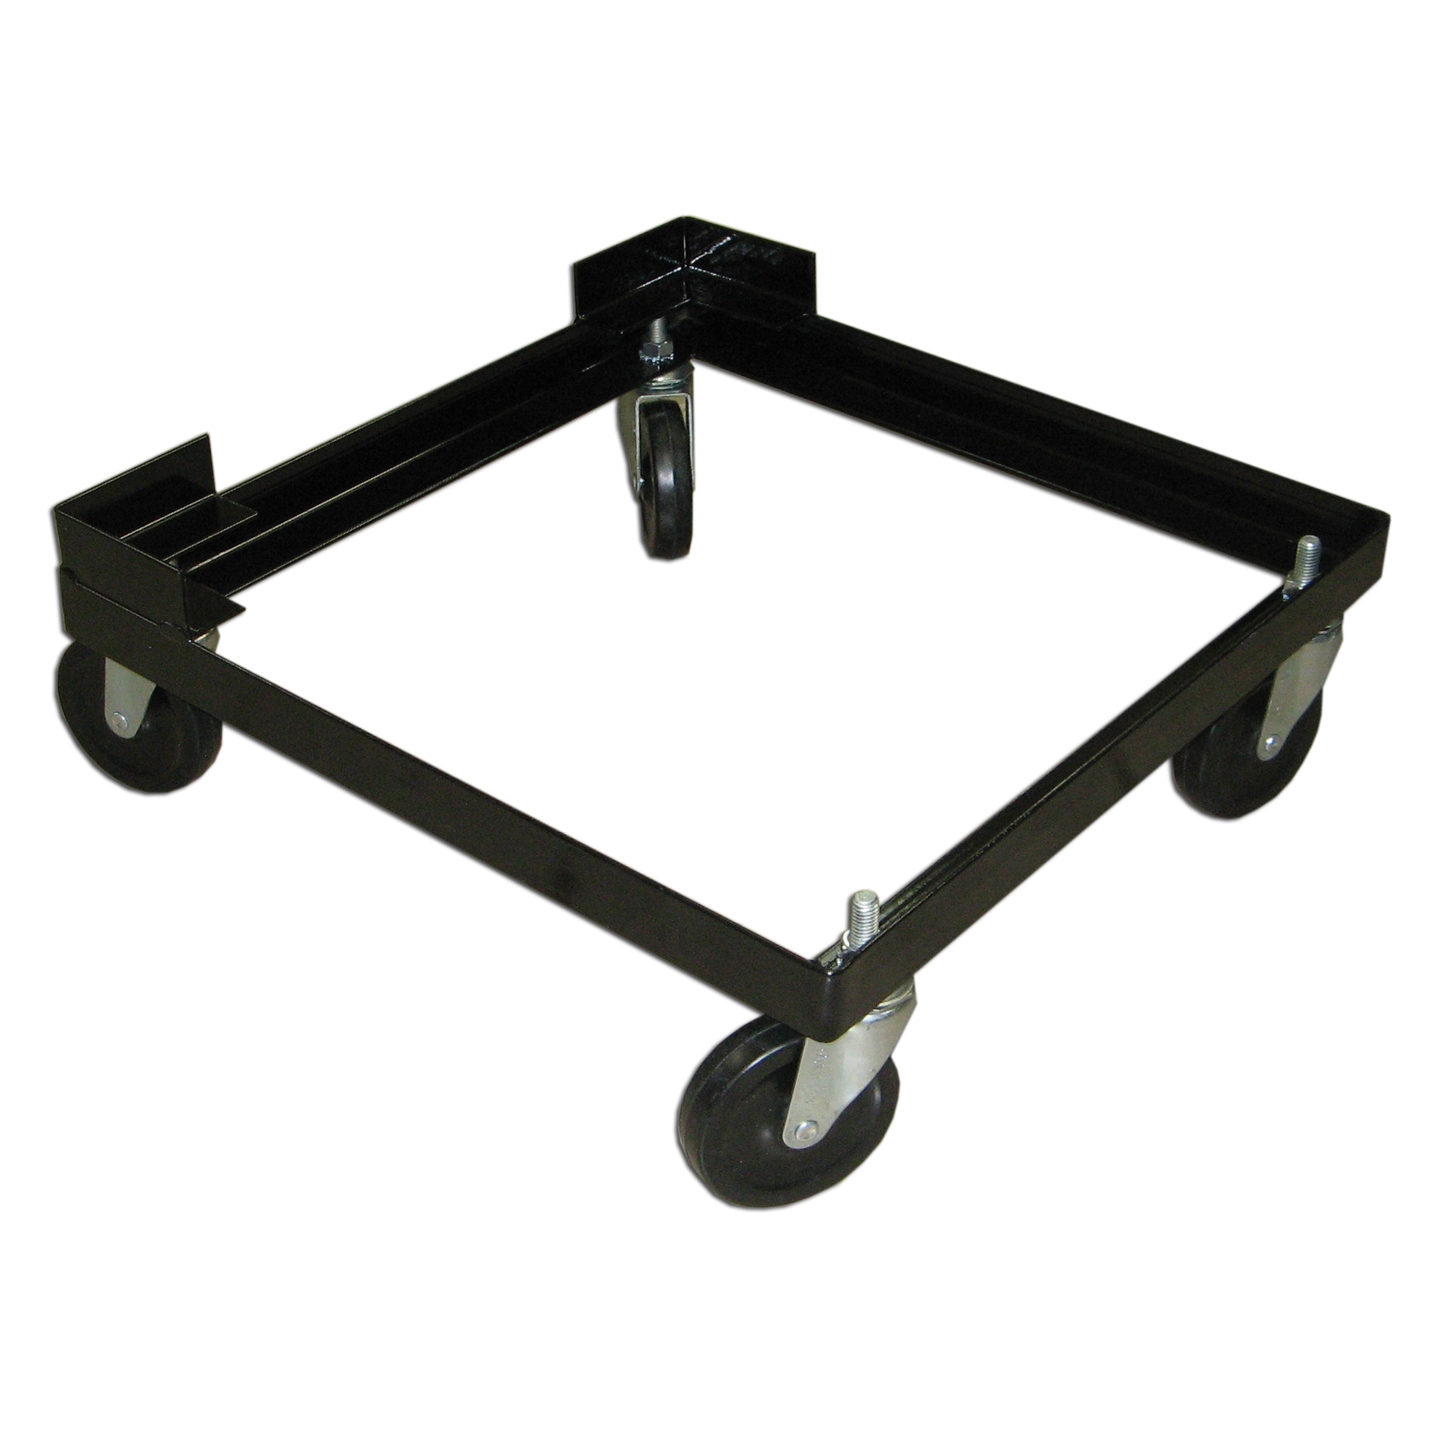 10M and 10S chair caddy